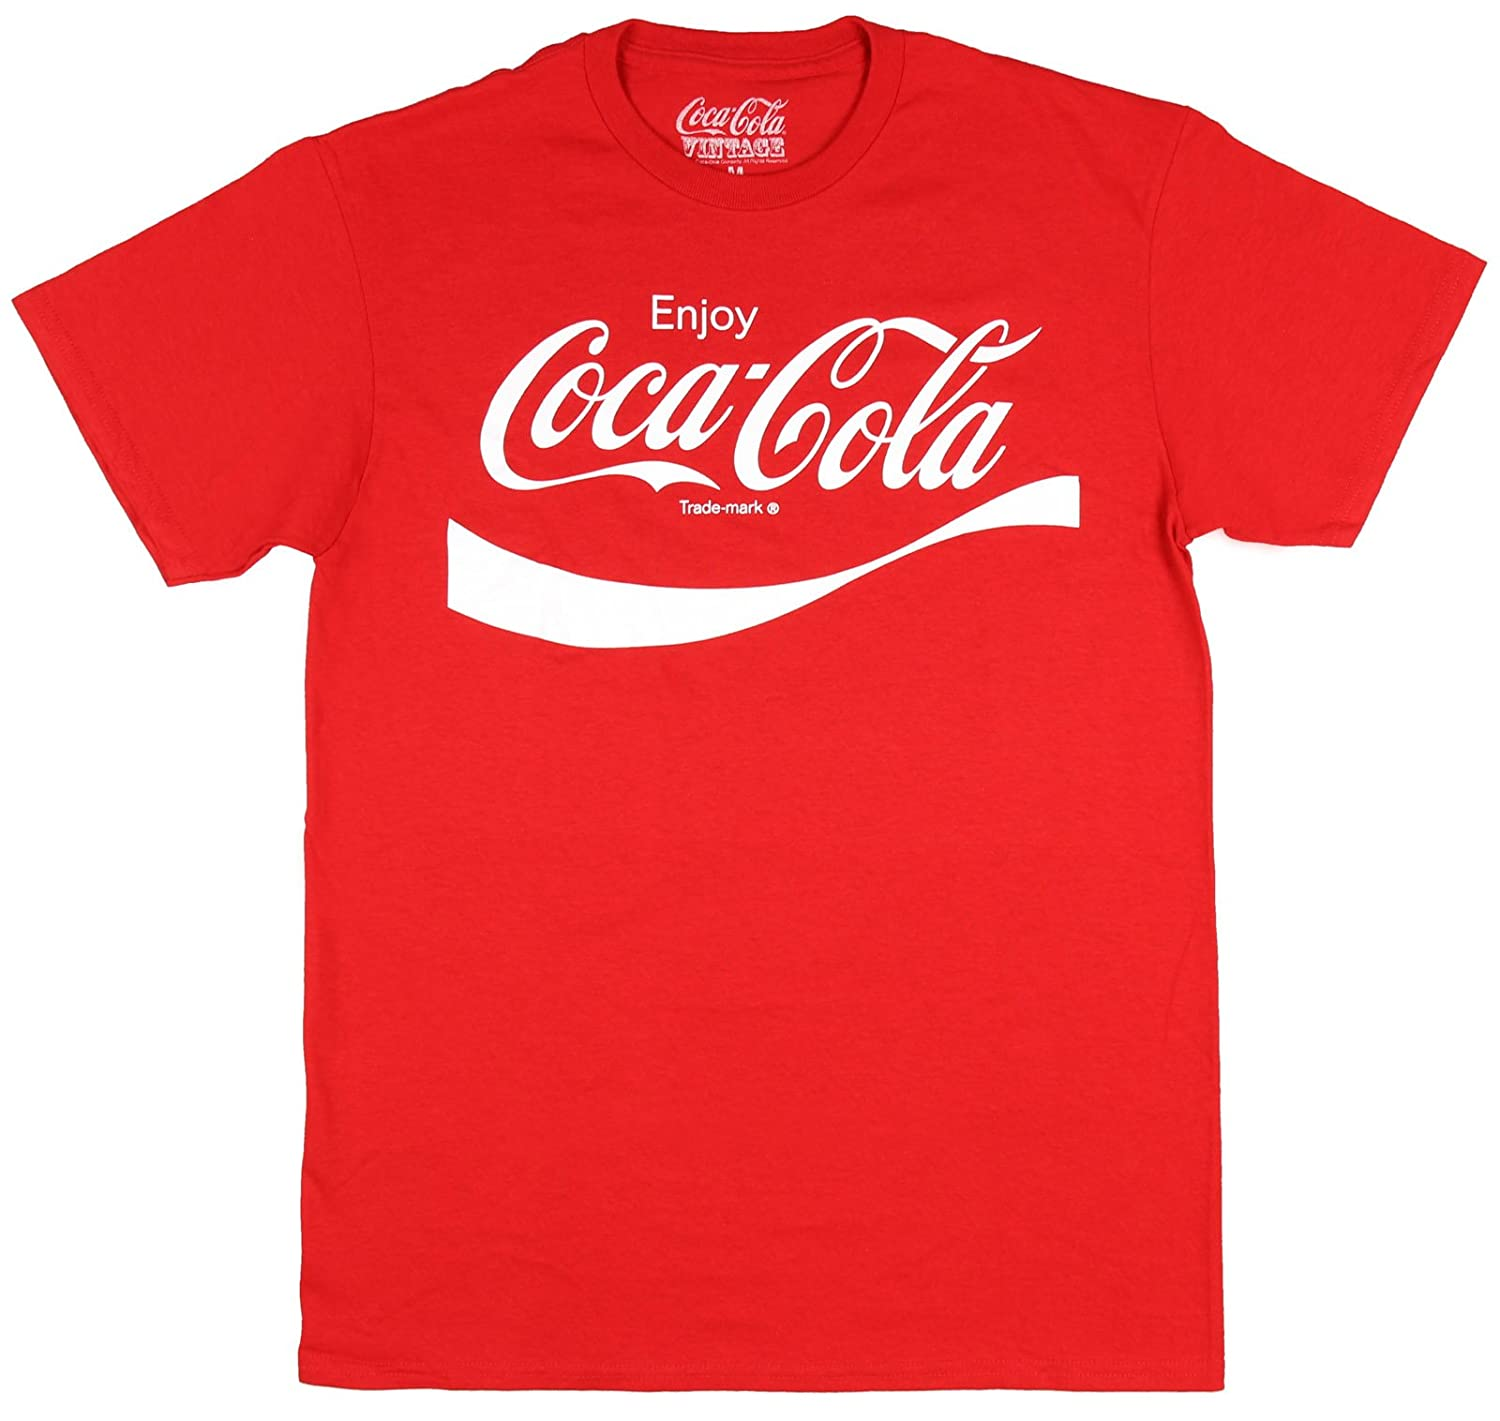 coca cola shirts t shirts design concept. Black Bedroom Furniture Sets. Home Design Ideas